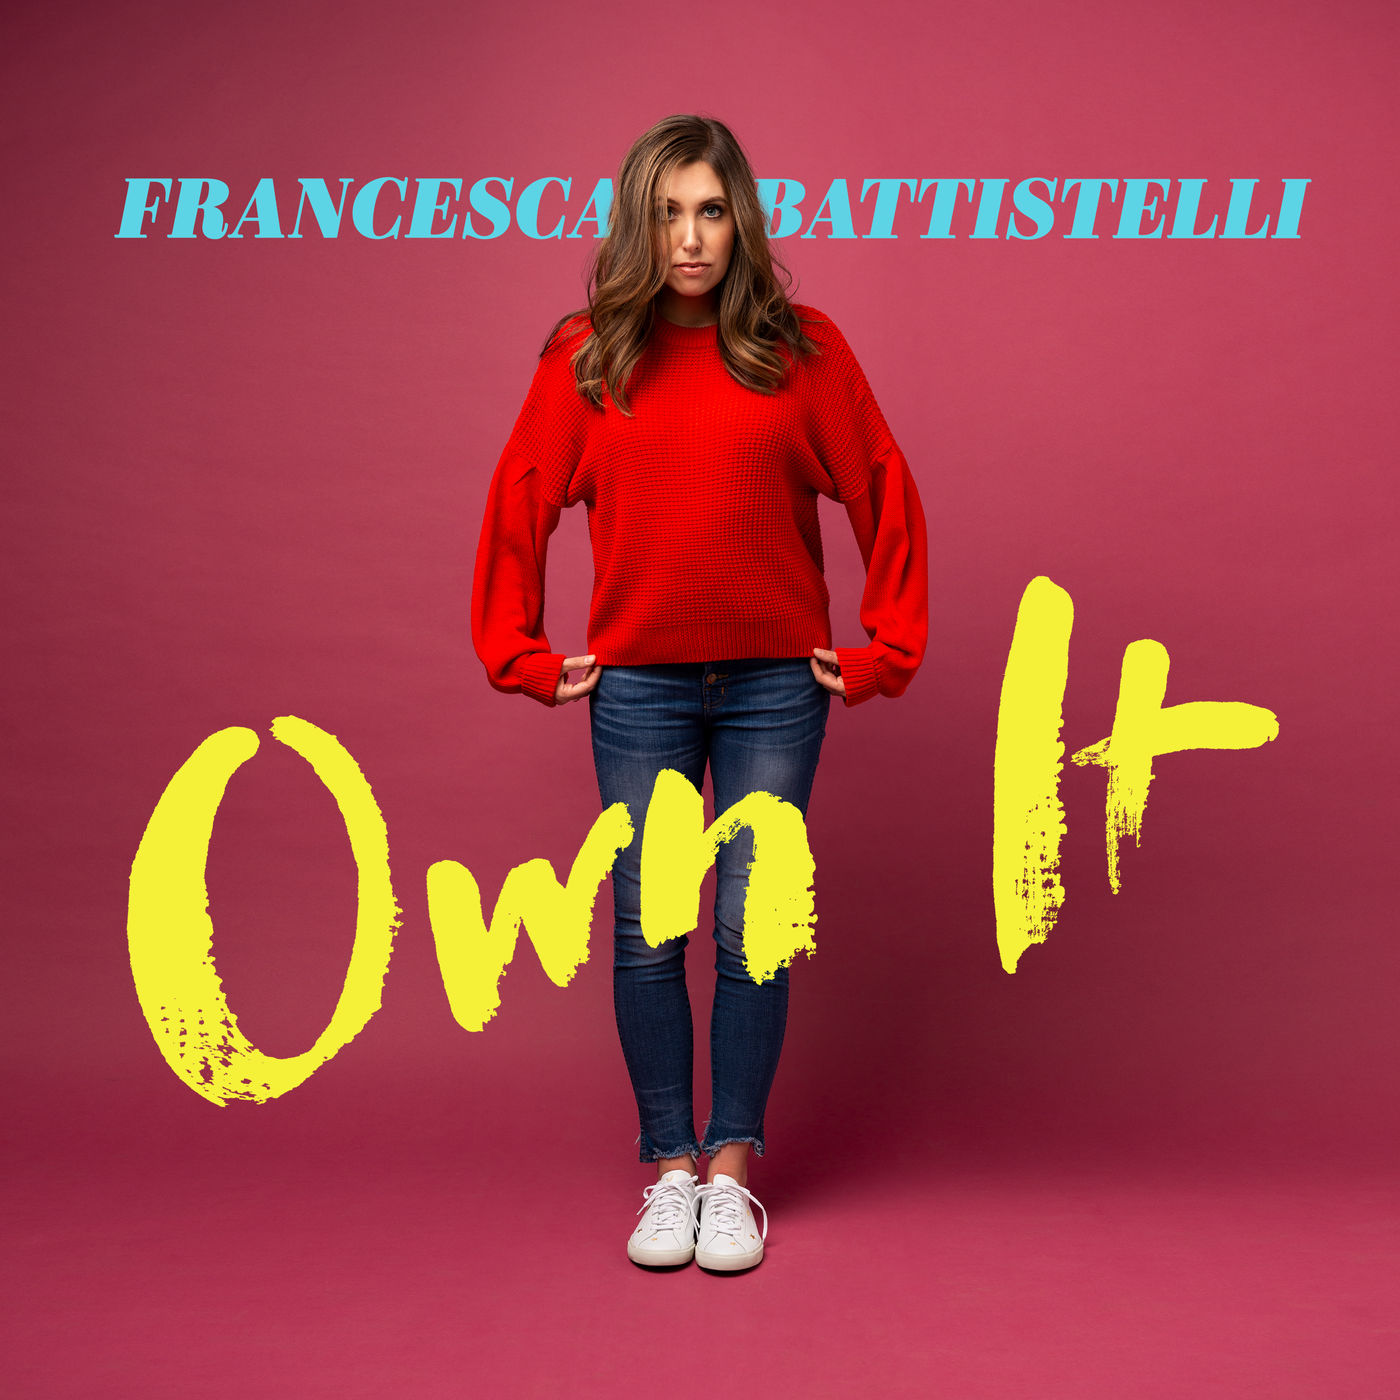 Francesca Battistelli - Own It (2018)